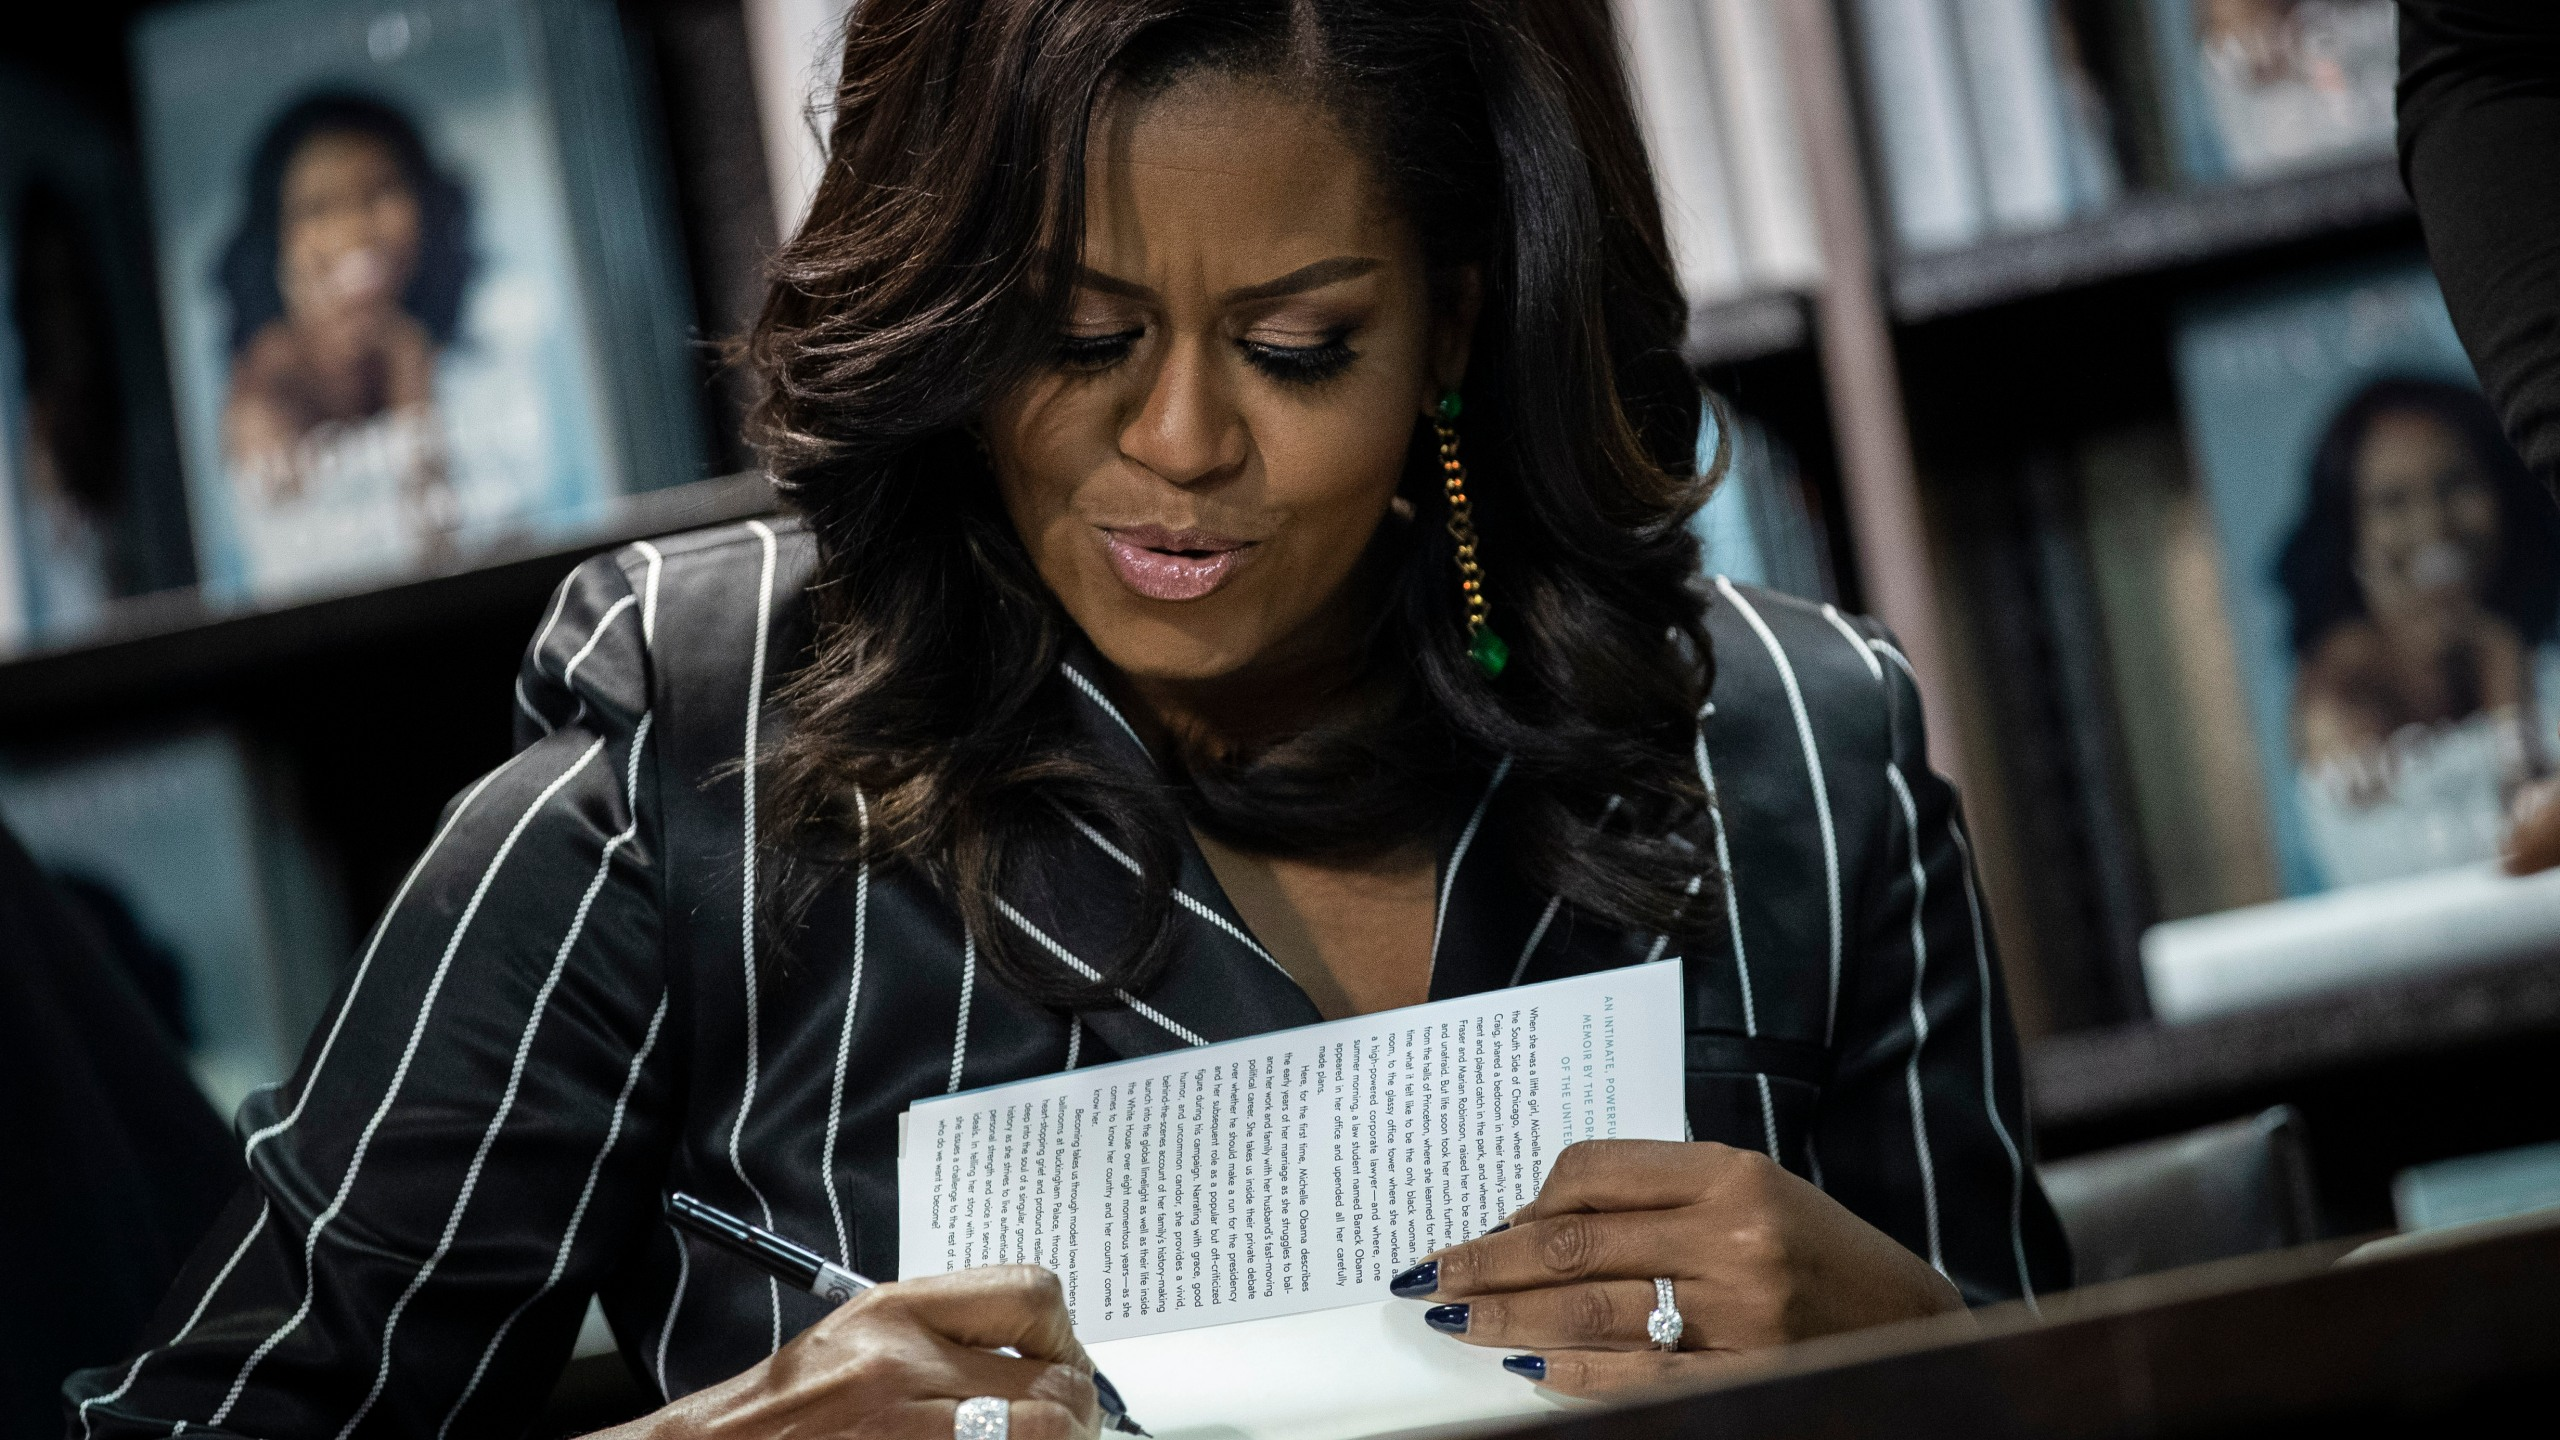 """Former First Lady Michelle Obama signs copies of her book """"Becoming"""" during a book signing event at a Barnes & Noble bookstore on Nov. 30, 2018, in New York City. (Credit: Drew Angerer/Getty Images)"""